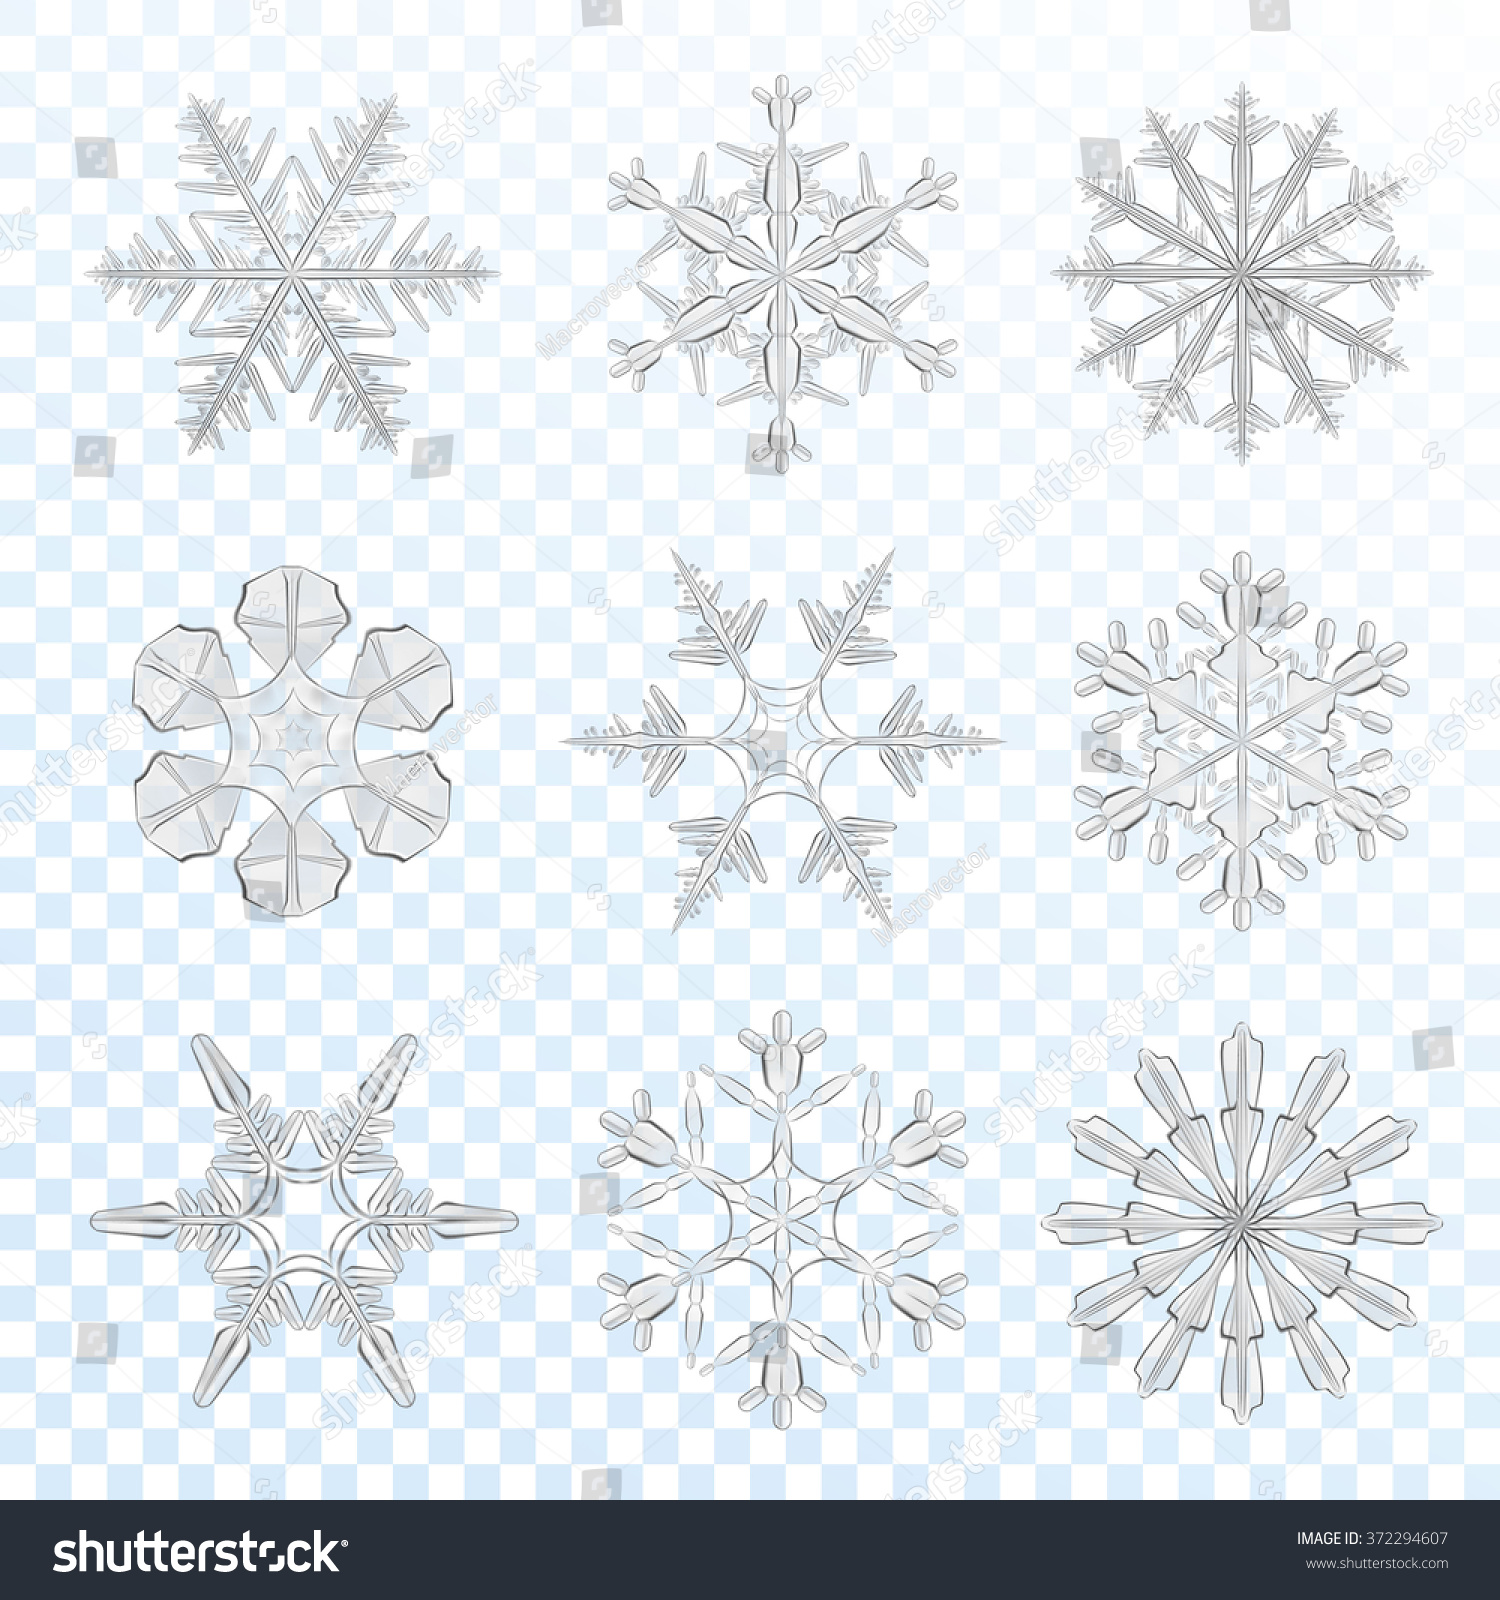 Realistic grey icy snowflakes set isolated on transparent